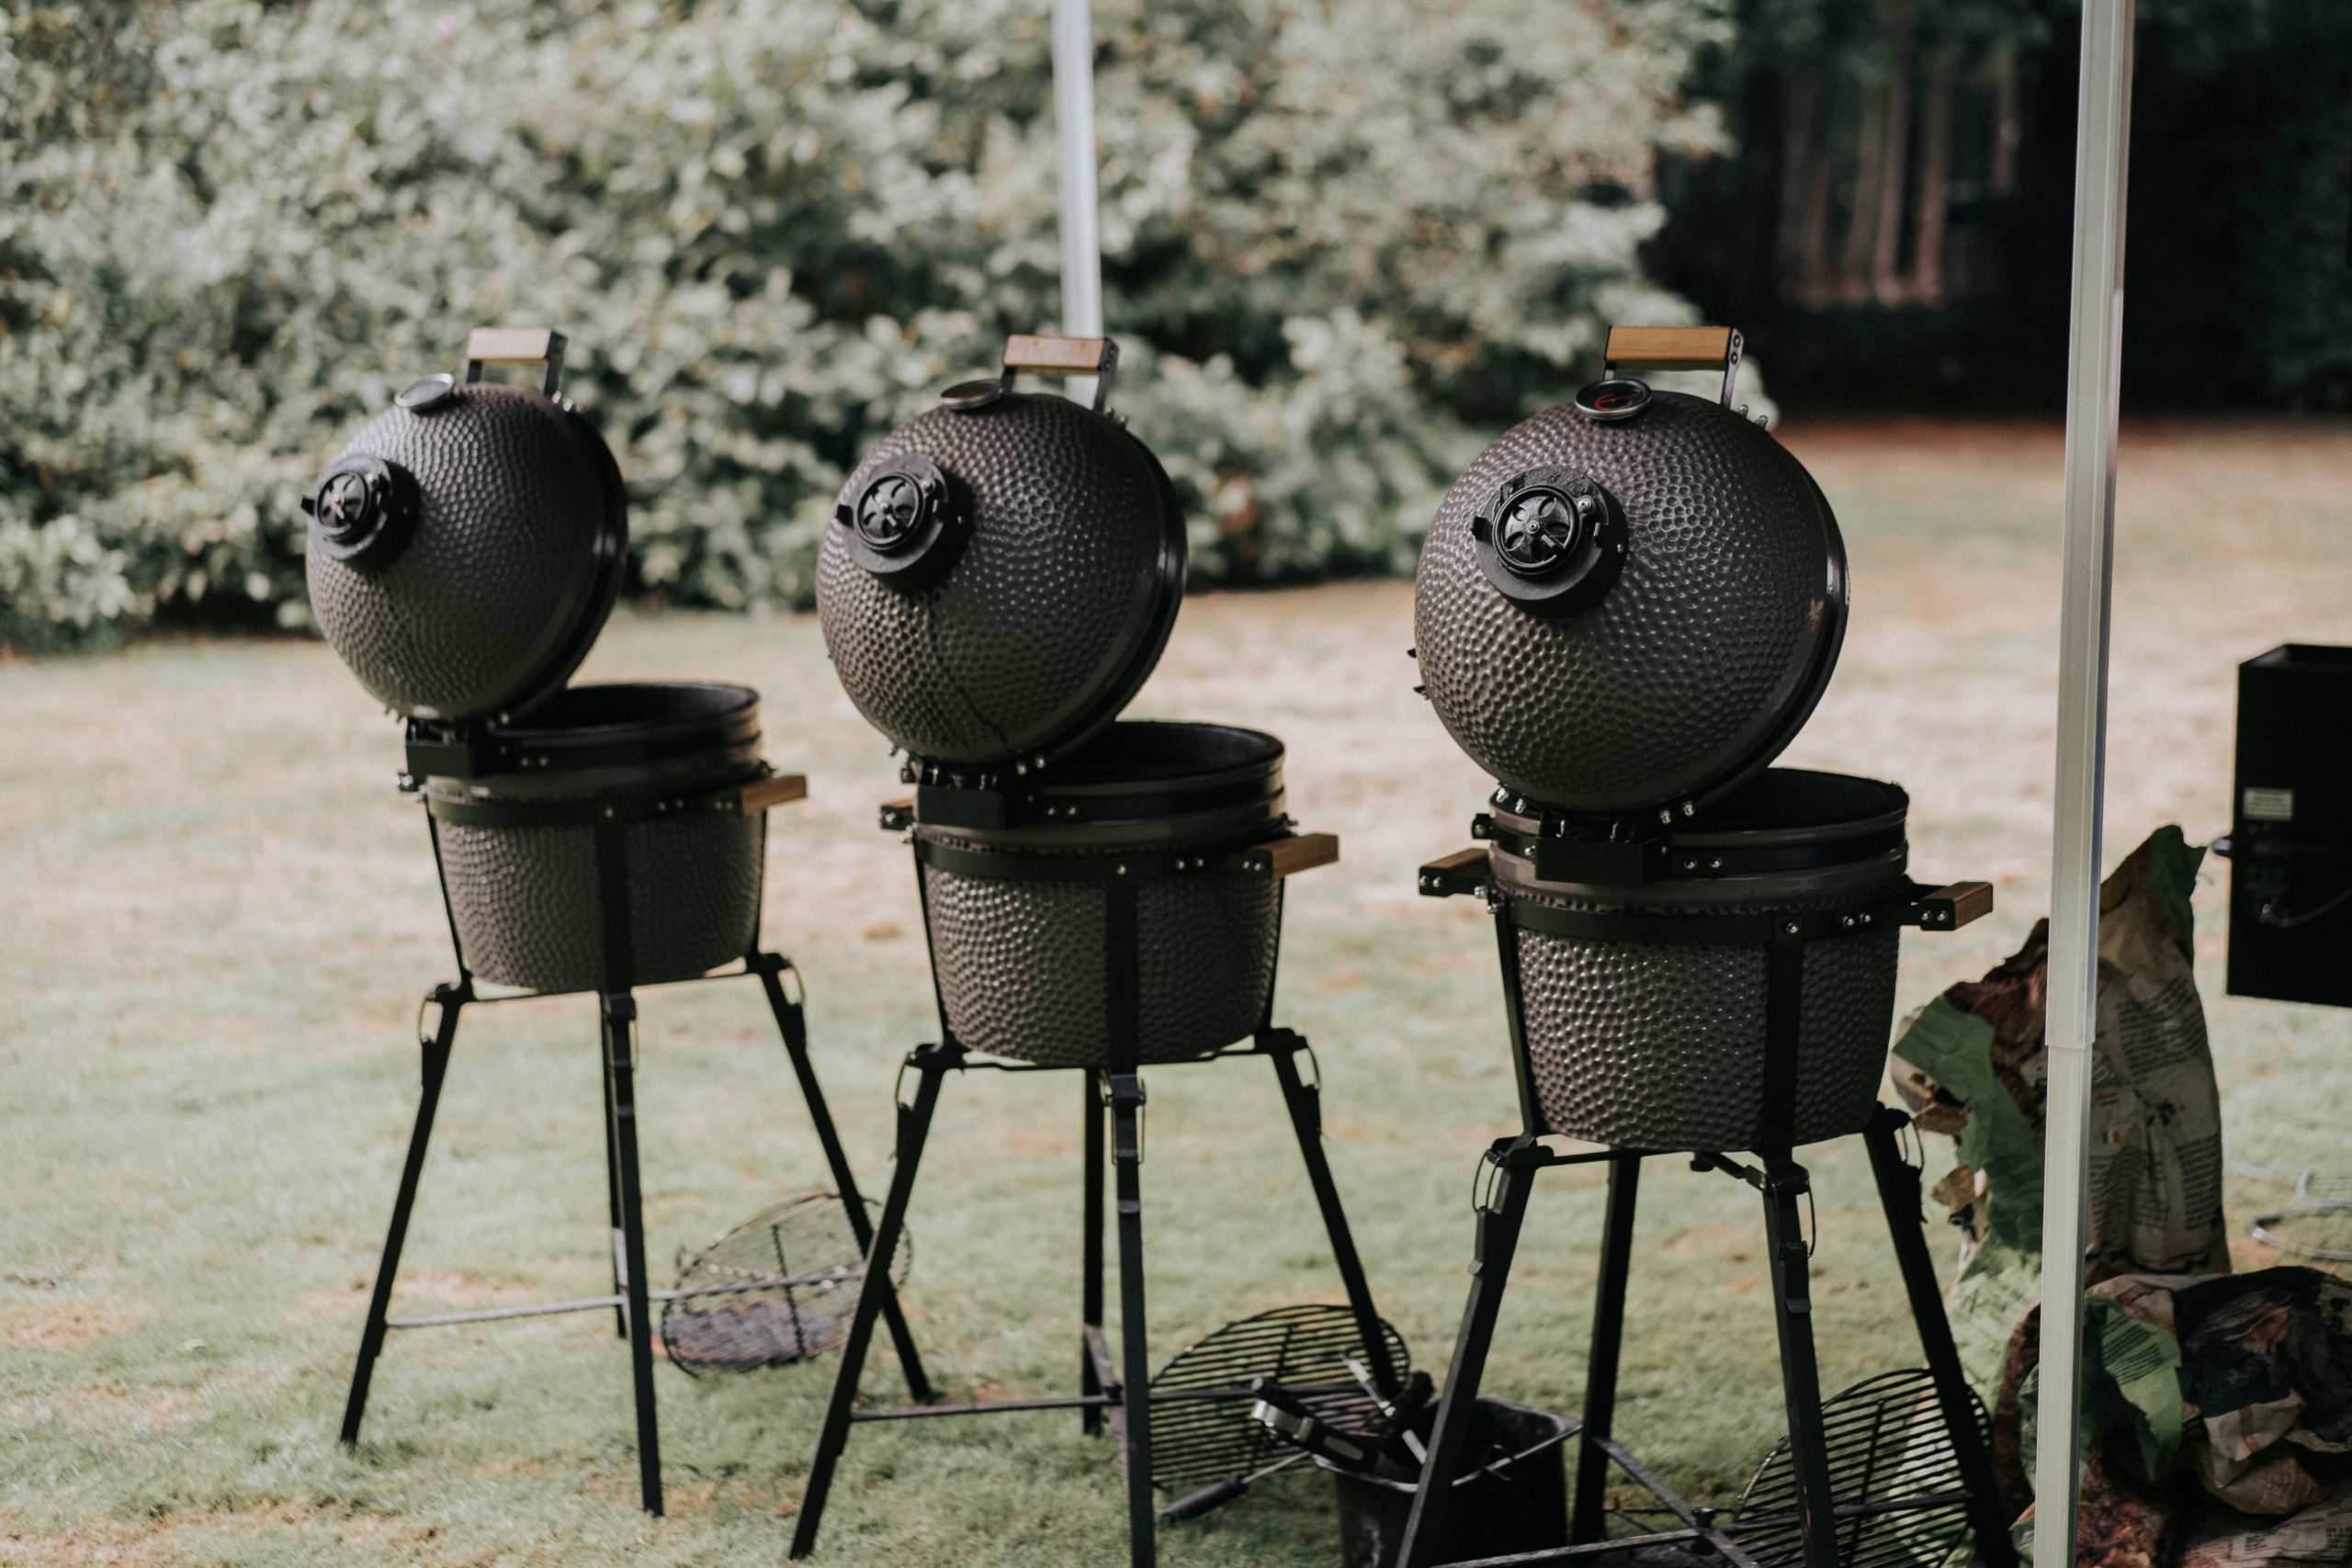 Catering barbeque Wezep Zwolle Big green egg